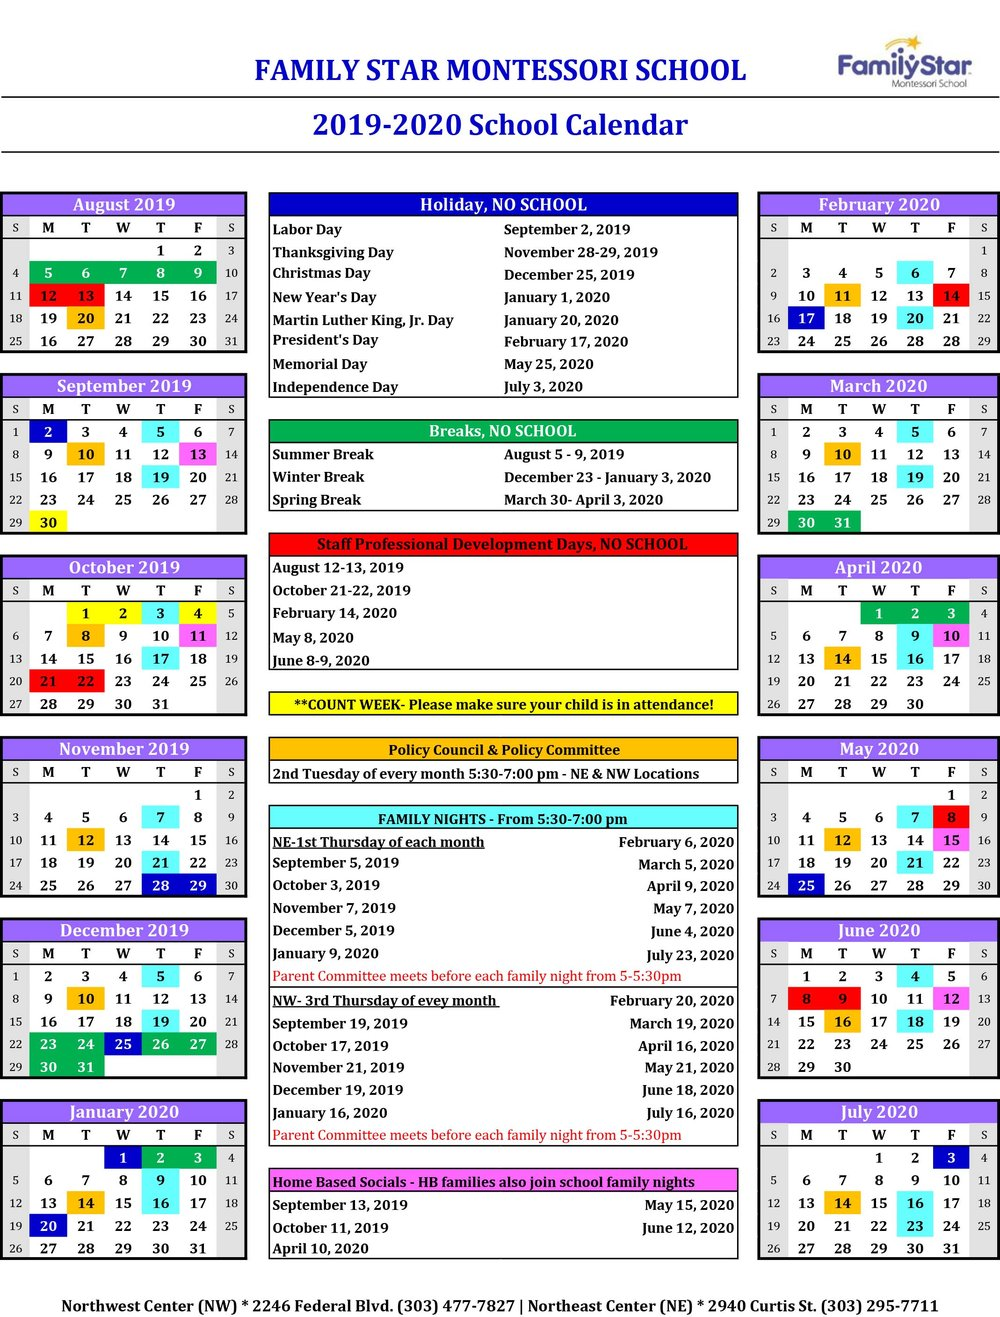 2020 Calendar Please School Calendar for 2019 2020 Now Available! — Family Star